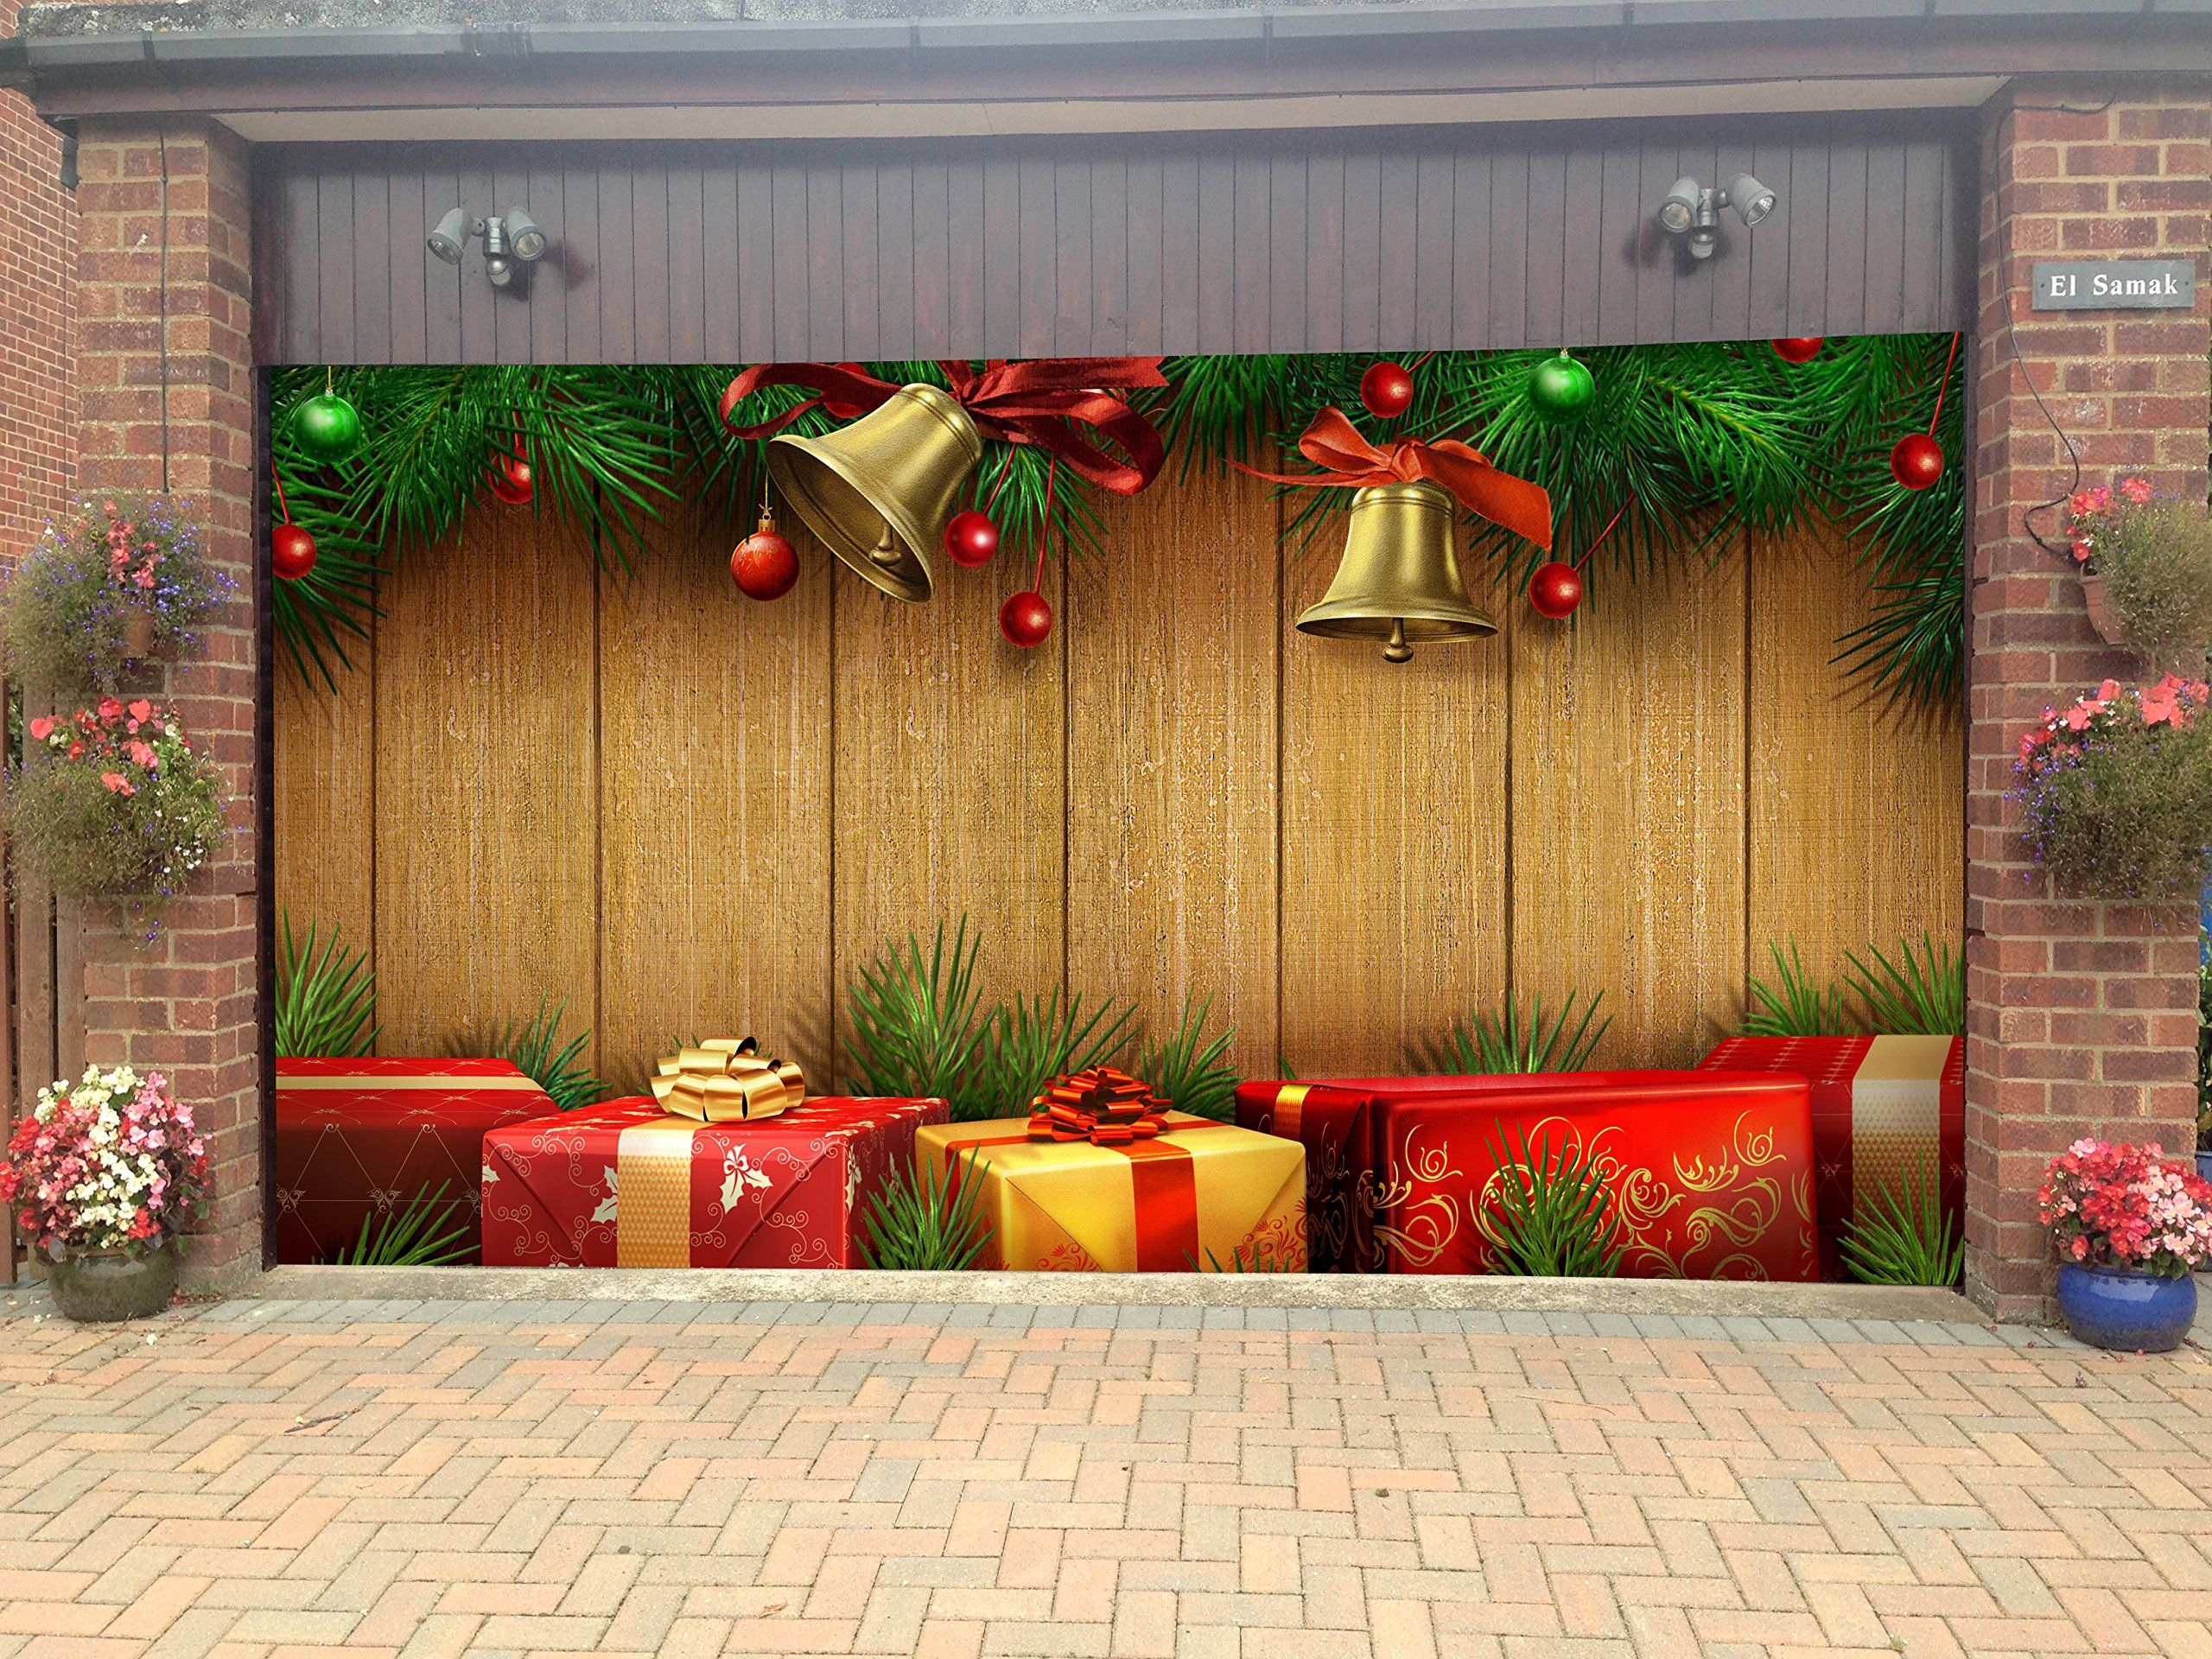 Merry Christmas Garage Door Covers 3d Banners Holiday Tree Decorations  Outdoor Billboard Murals GD56